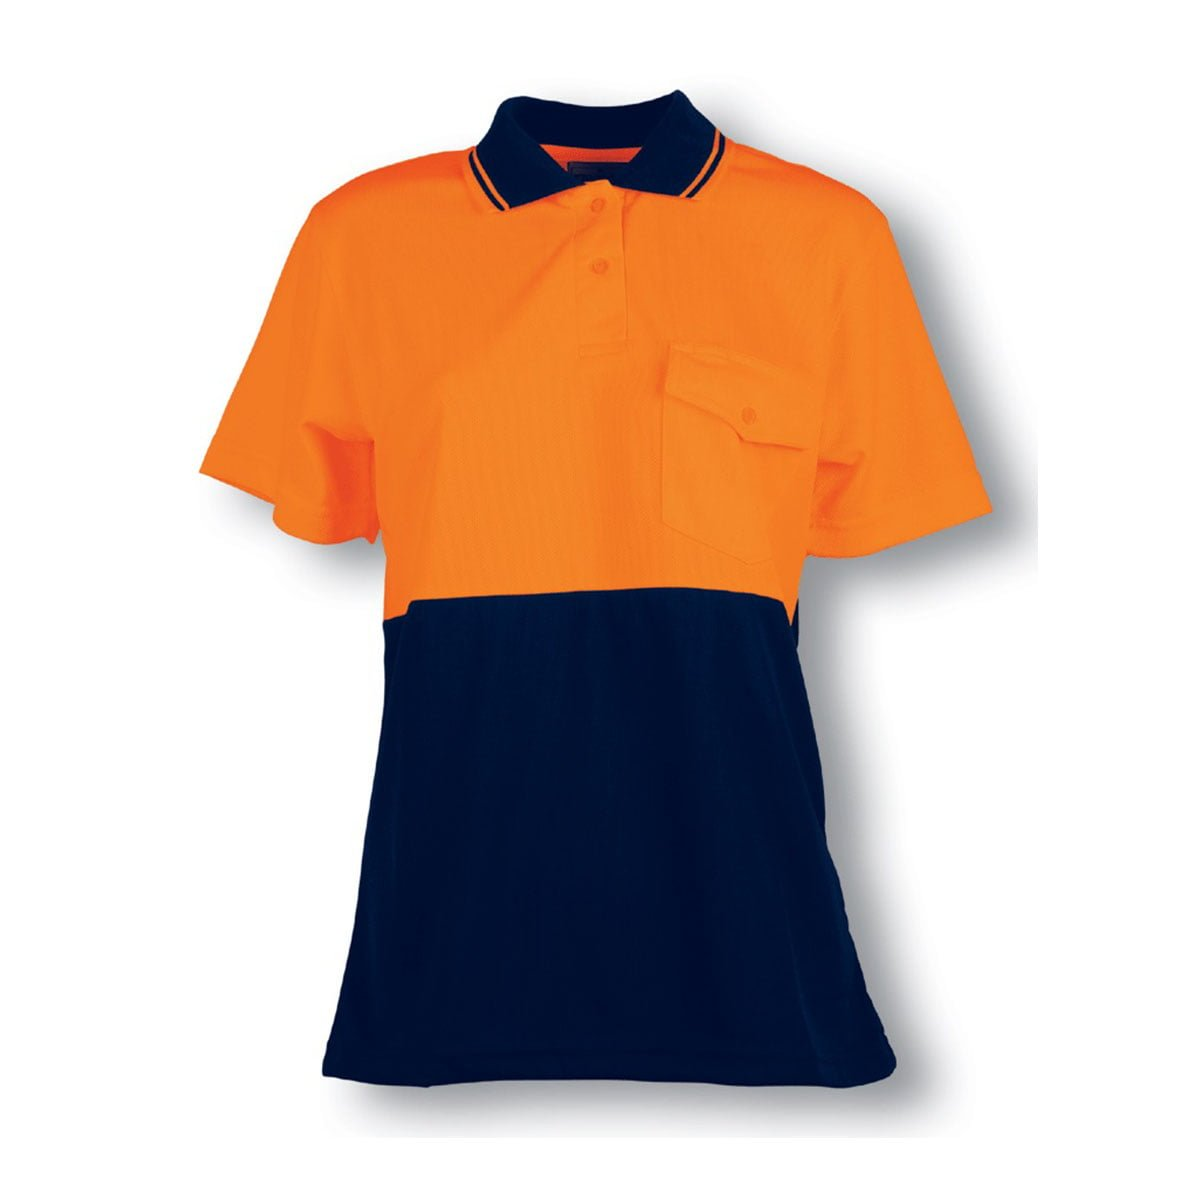 LADIES HI-VIS SAFETY POLO-Orange / Navy